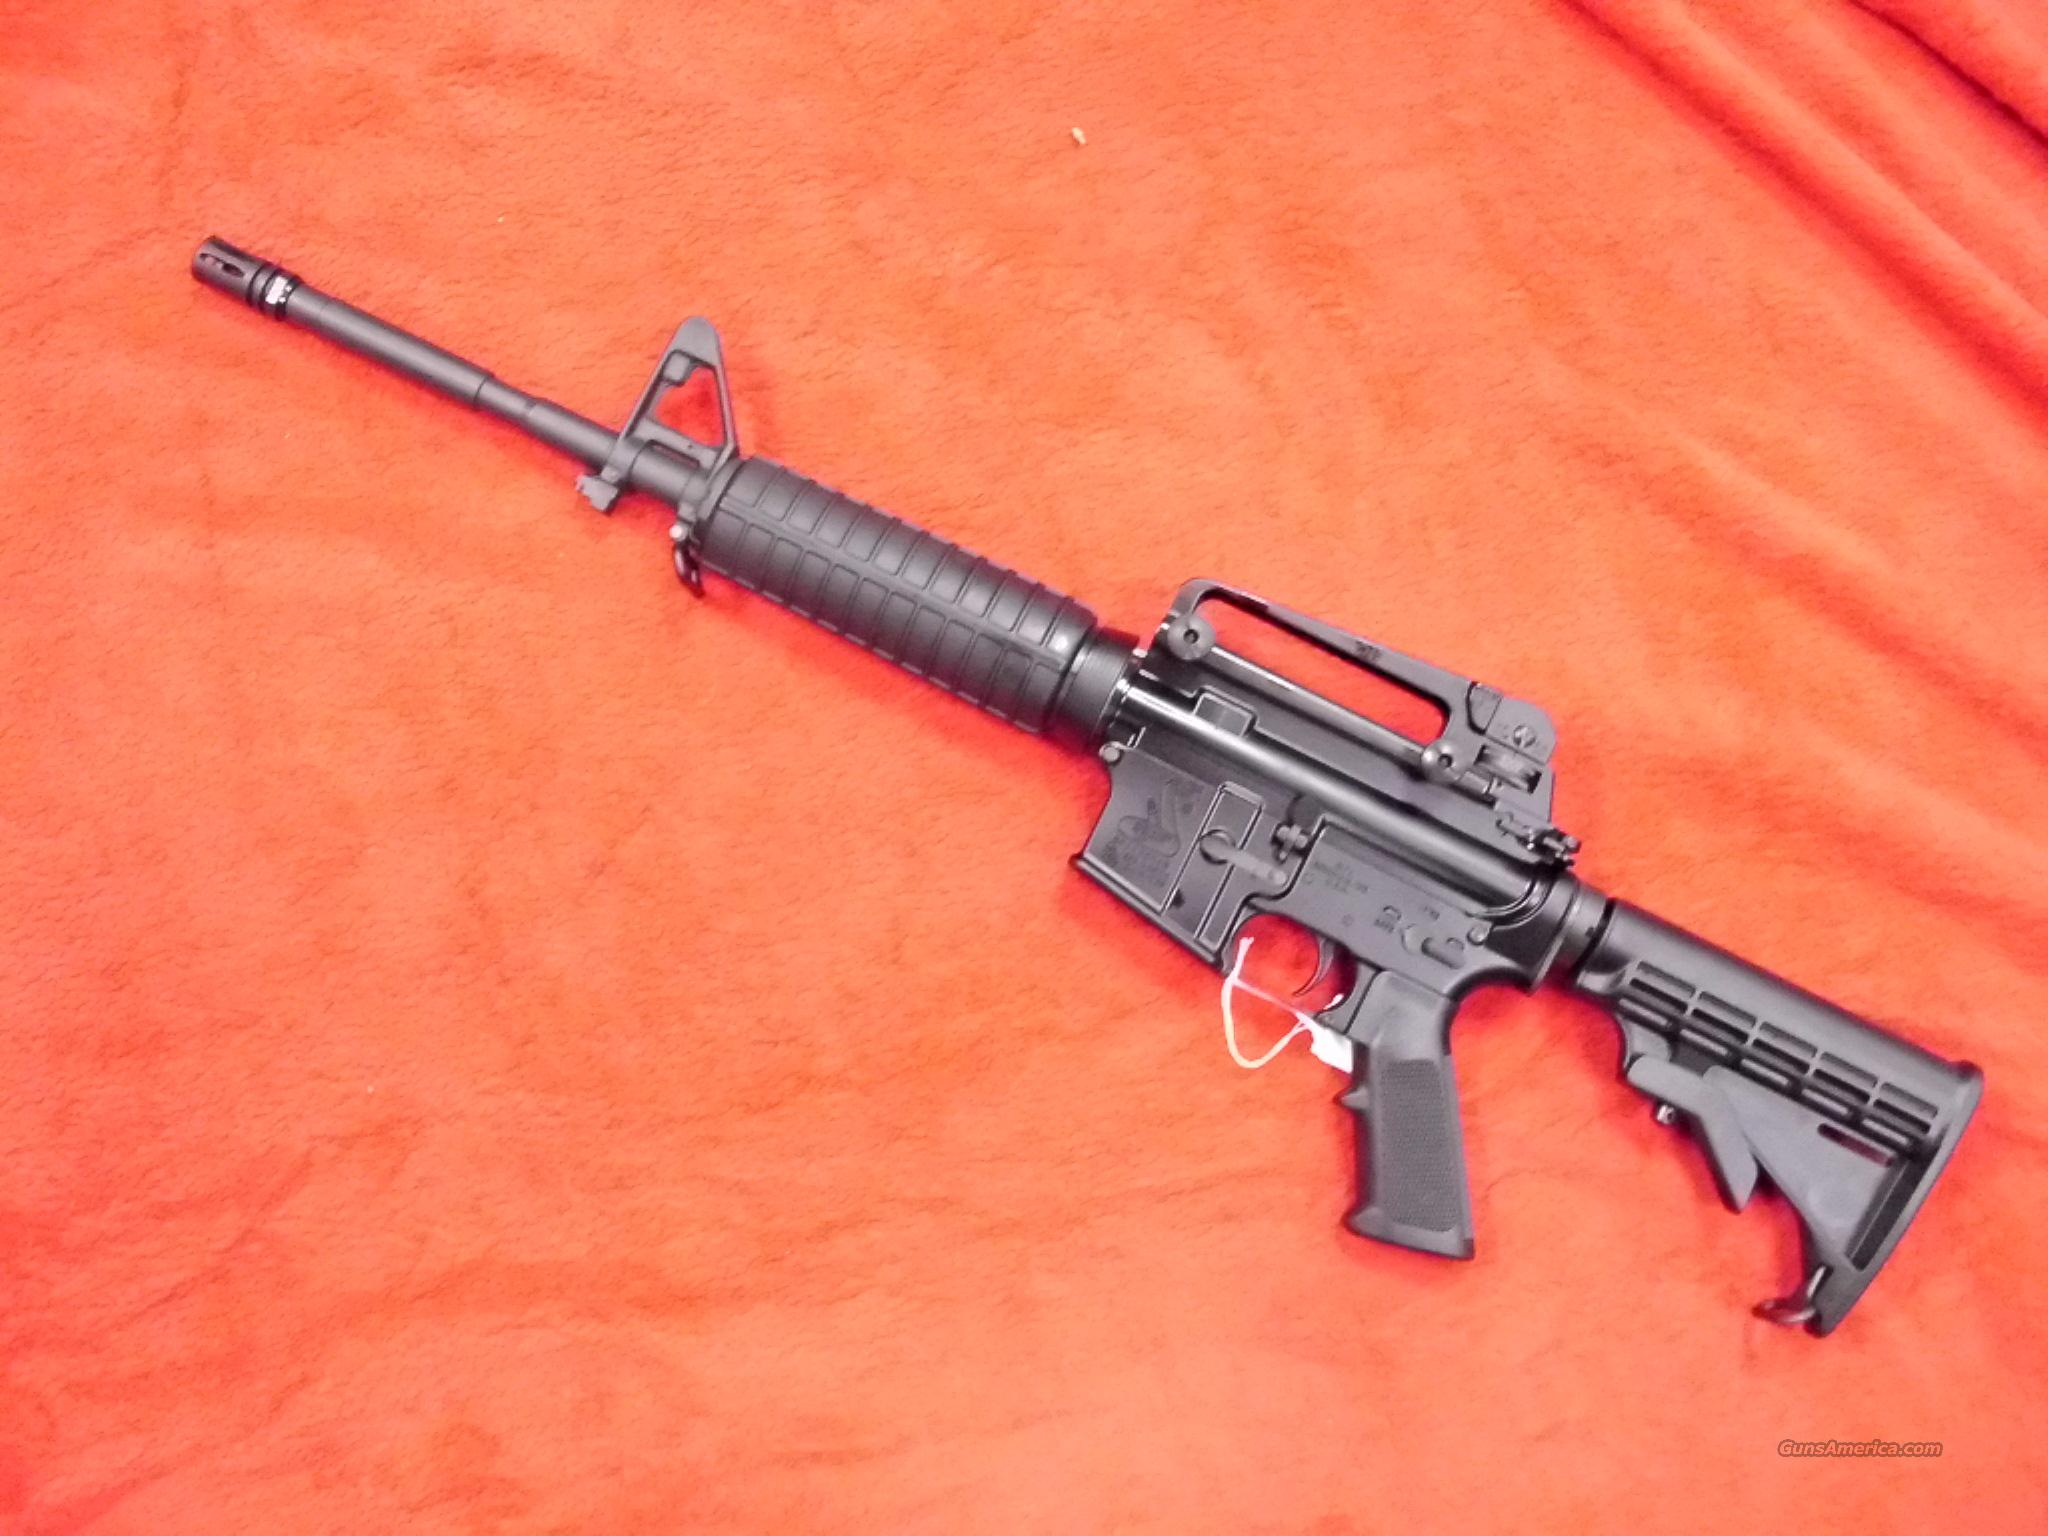 Bushmaster AR15 A3 Telef 16 M4 223 5.56 New For Sale